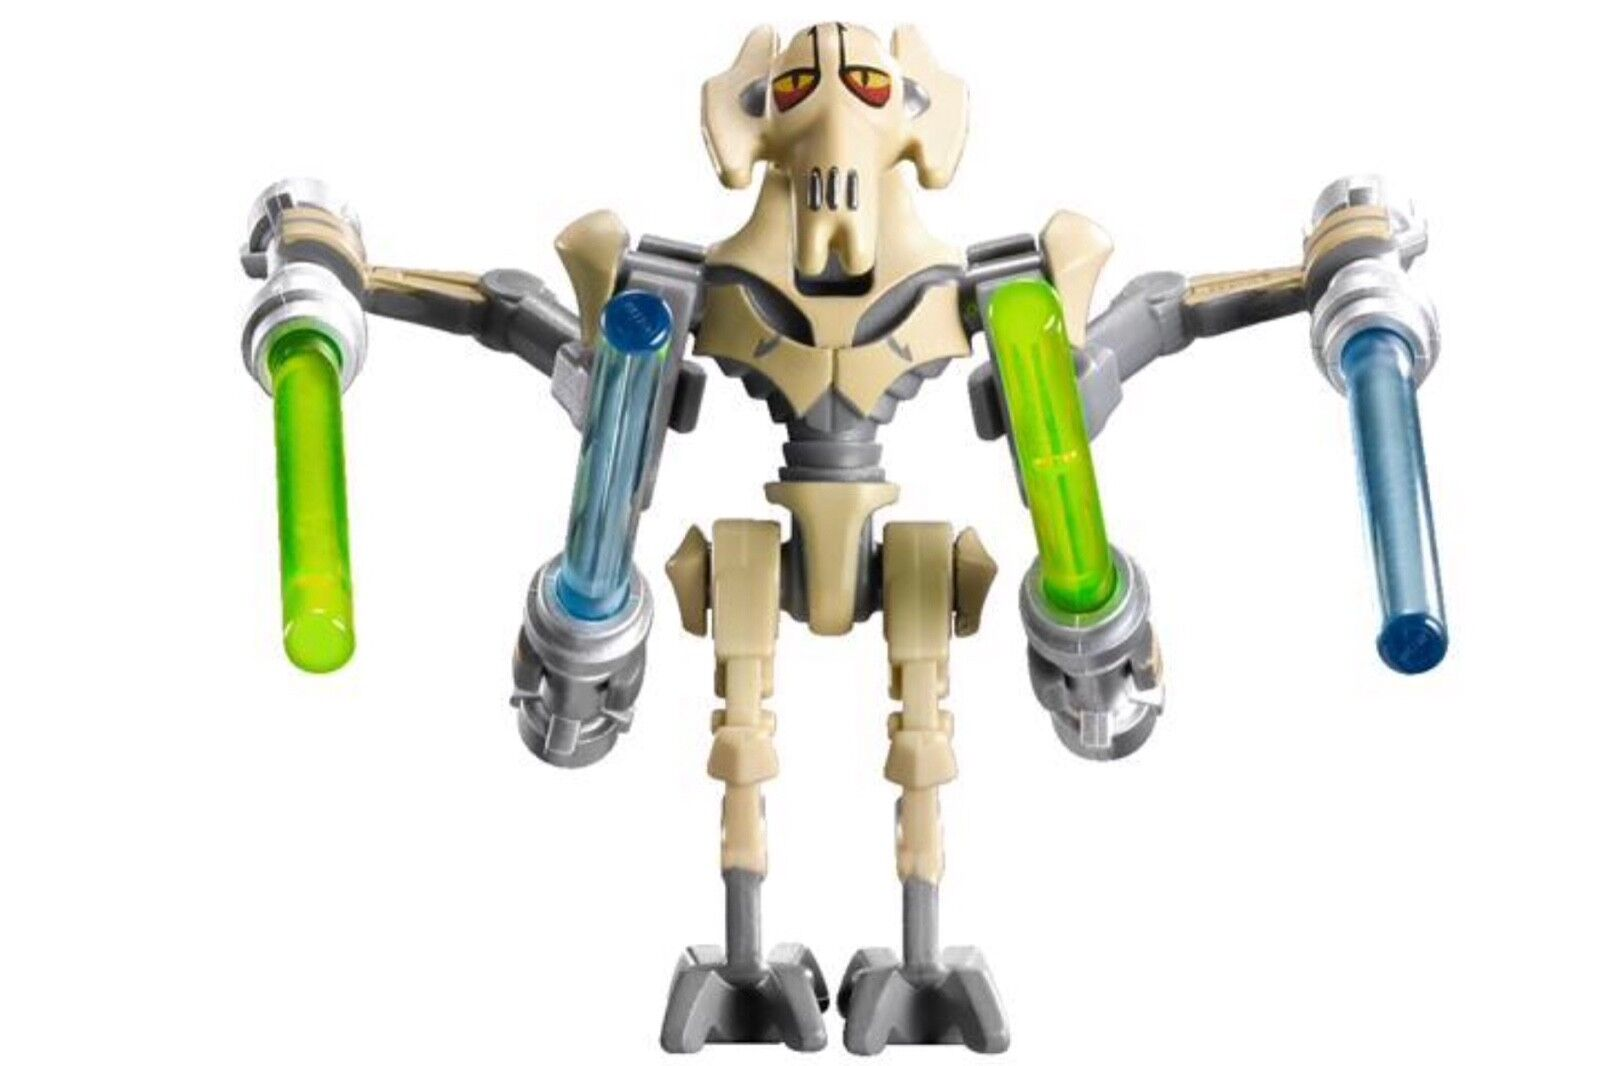 New Star Wars Lego minifigure GENERAL GRIEVOUS from set 9515 now retired